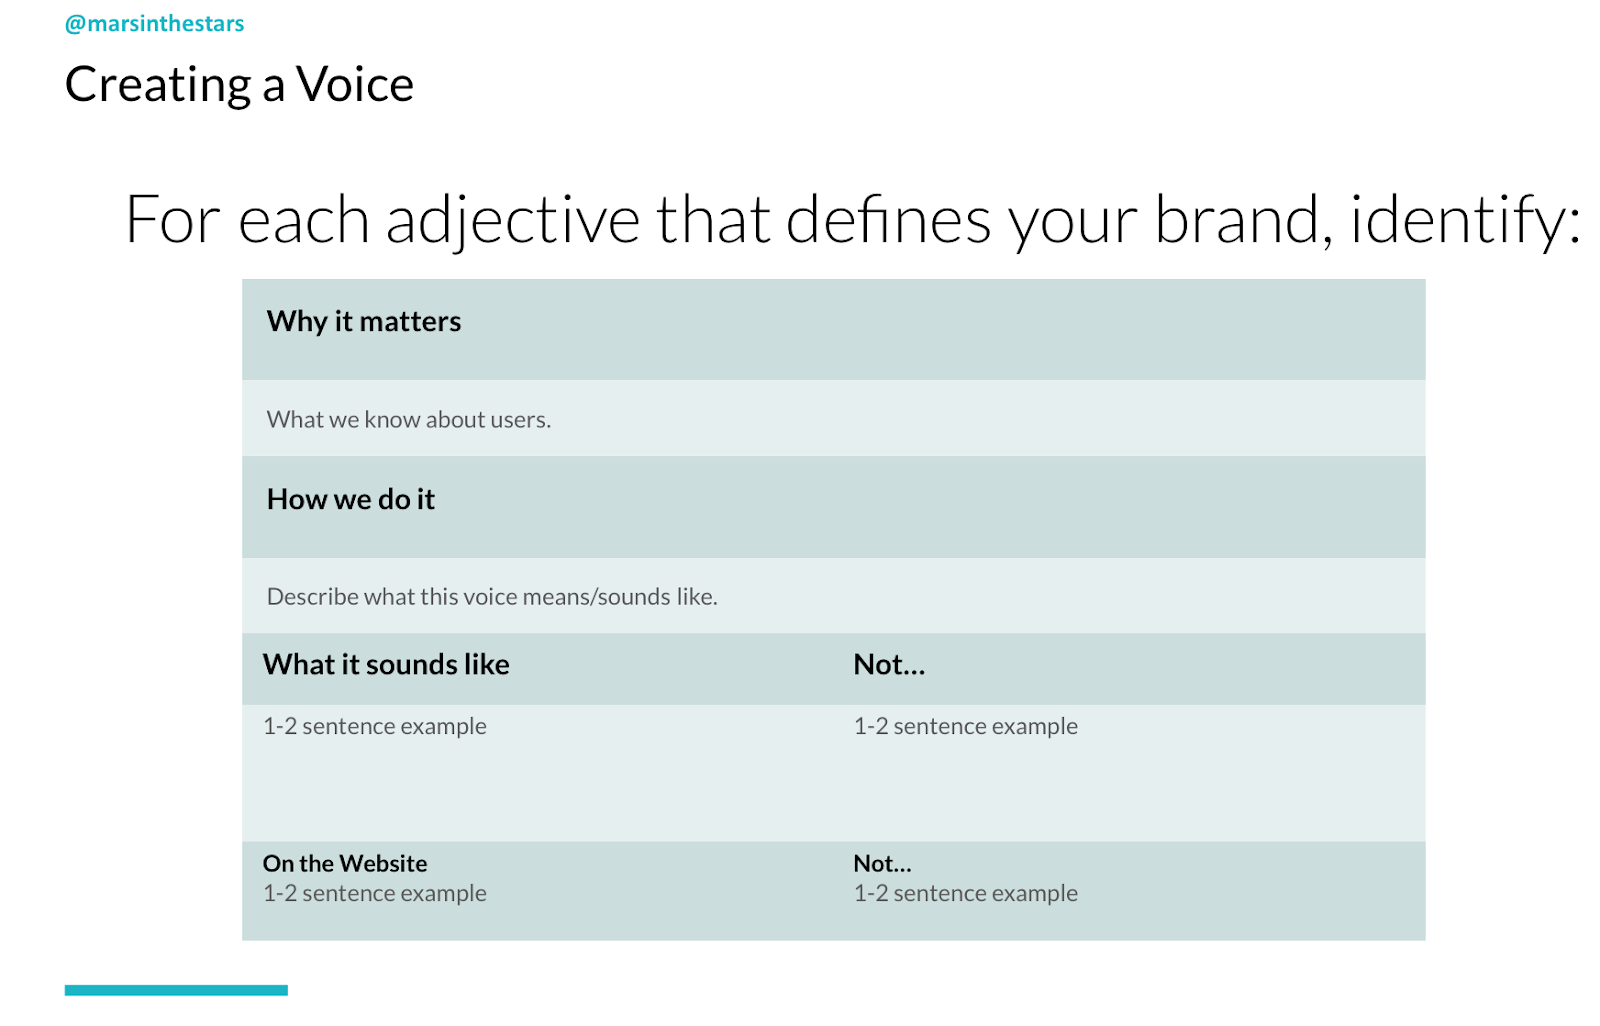 Slide shows how to create an accessible voice for your brand. For each adjective that defines you, identify: why it matters, how we do it, what it sounds like, (and doesn't) and what it sounds like on the website (and doesn't).